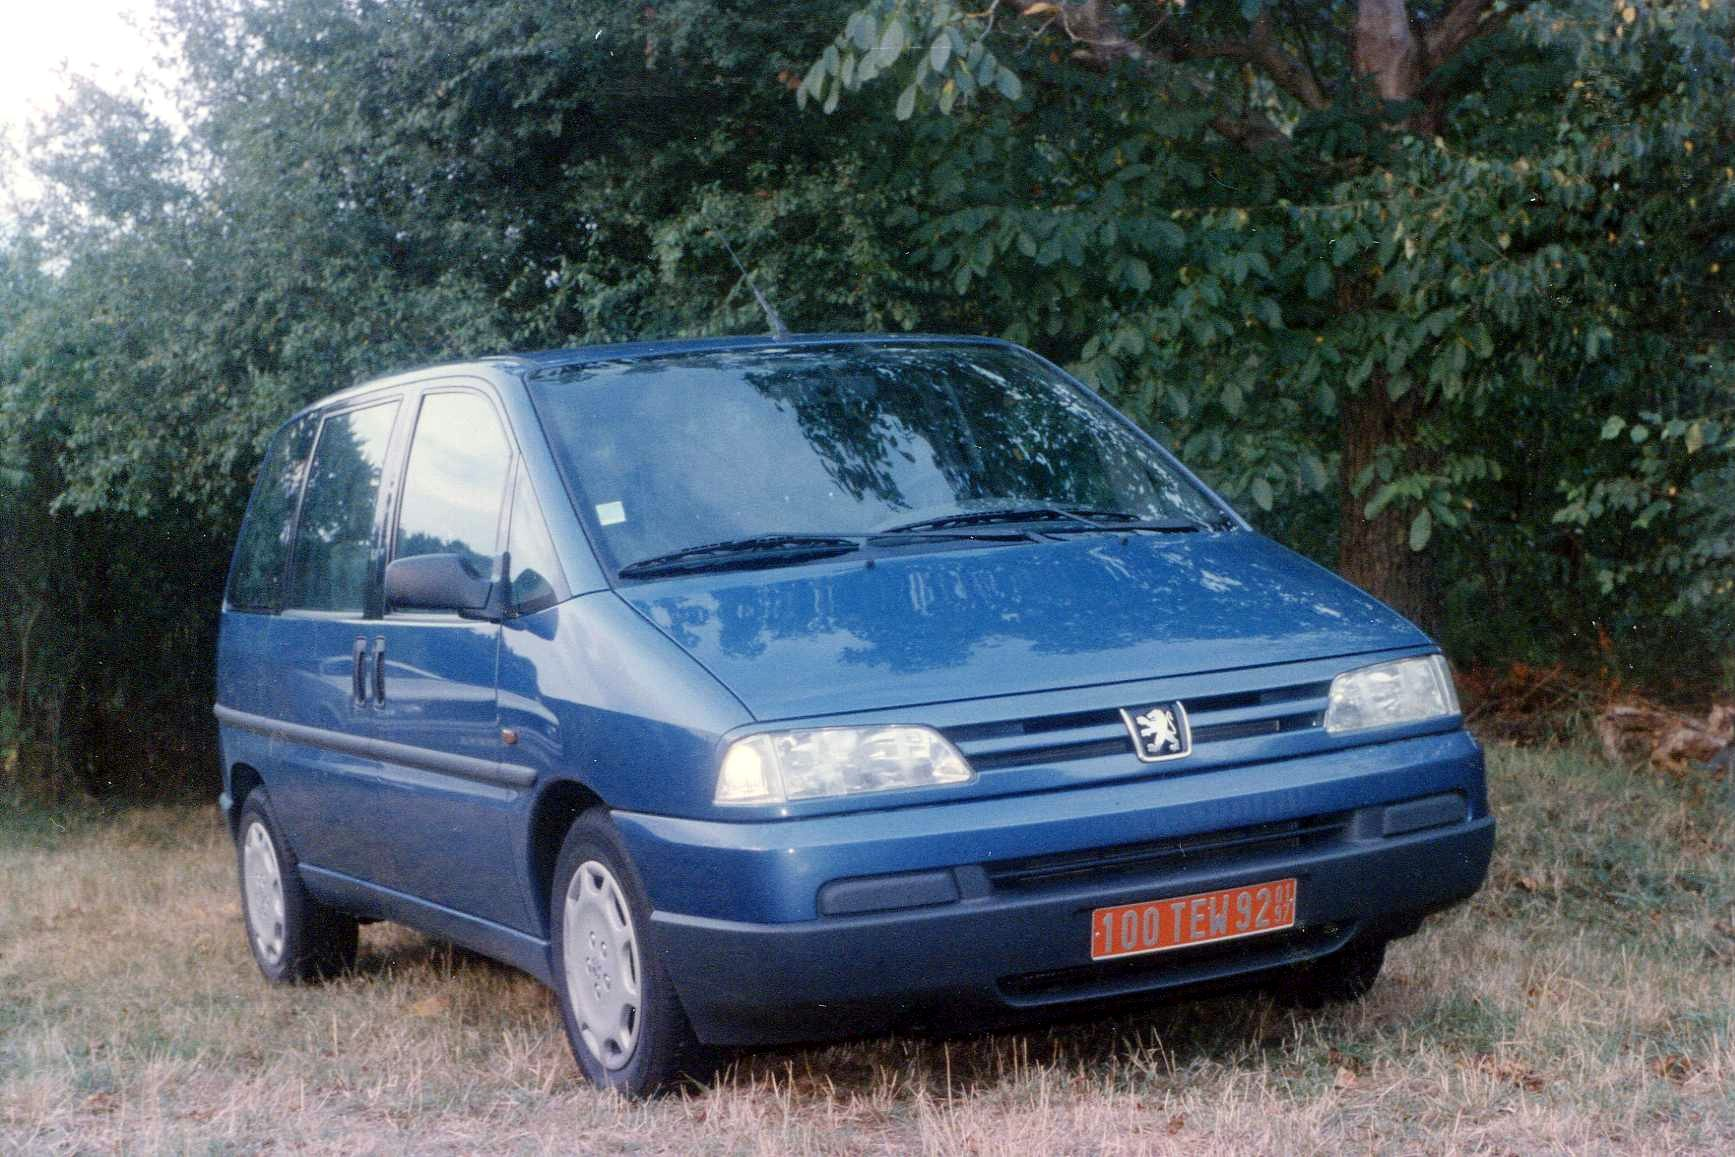 File:Peugeot 806 (3205248475).jpg - Wikimedia Commons